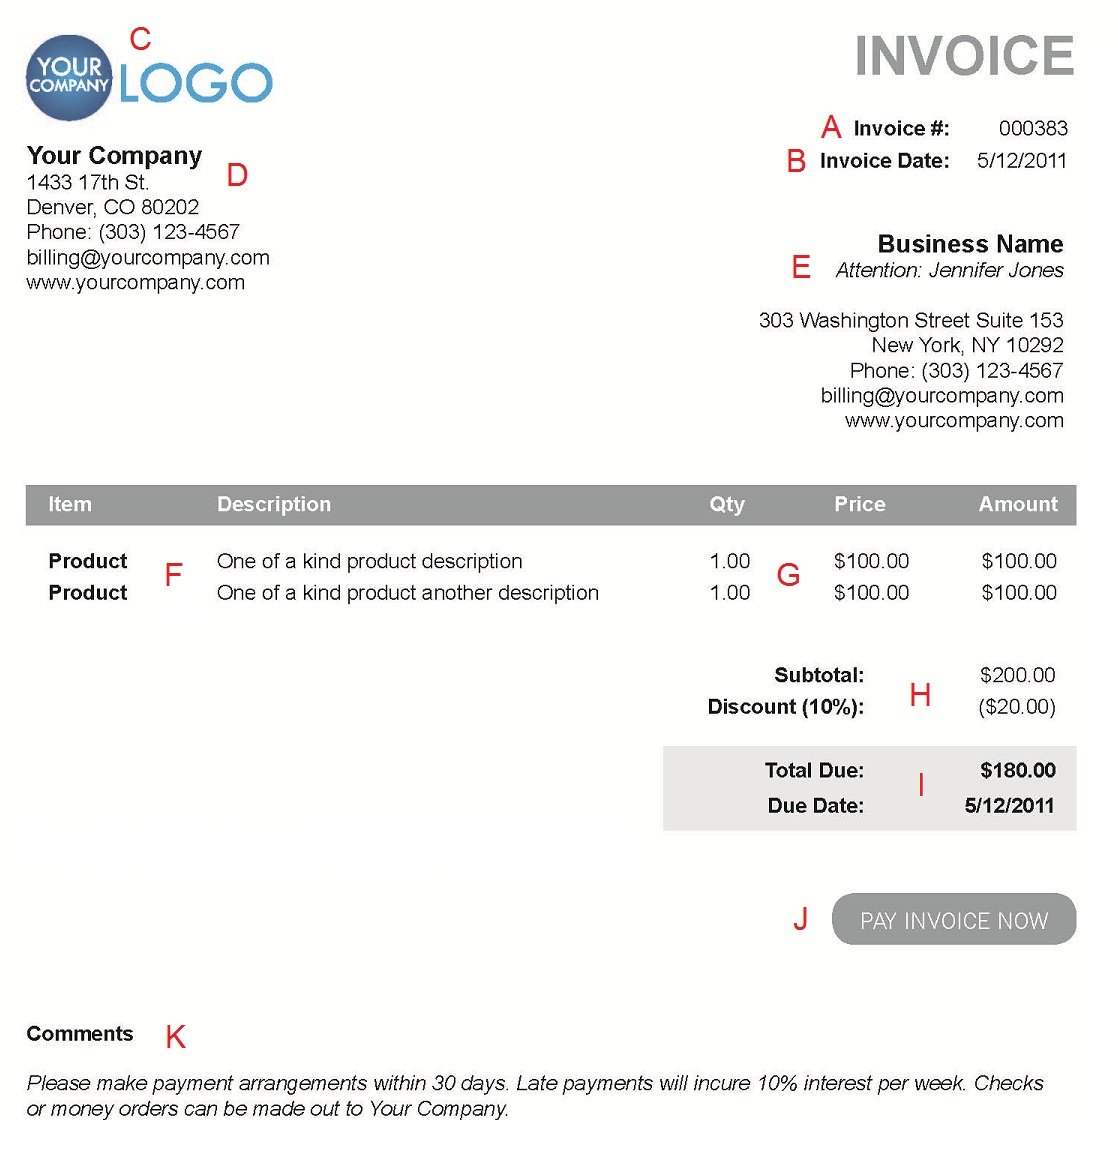 Coachoutletonlineplusus  Picturesque The  Different Sections Of An Electronic Payment Invoice With Licious A  With Delightful Current Account Receipts Also Receipt Business Definition In Addition Hdfc Life Insurance Premium Receipt And Sample Receipt Of Payment Template As Well As Airport Taxi Receipt Additionally Acknowledge Receipt Of From Paysimplecom With Coachoutletonlineplusus  Licious The  Different Sections Of An Electronic Payment Invoice With Delightful A  And Picturesque Current Account Receipts Also Receipt Business Definition In Addition Hdfc Life Insurance Premium Receipt From Paysimplecom